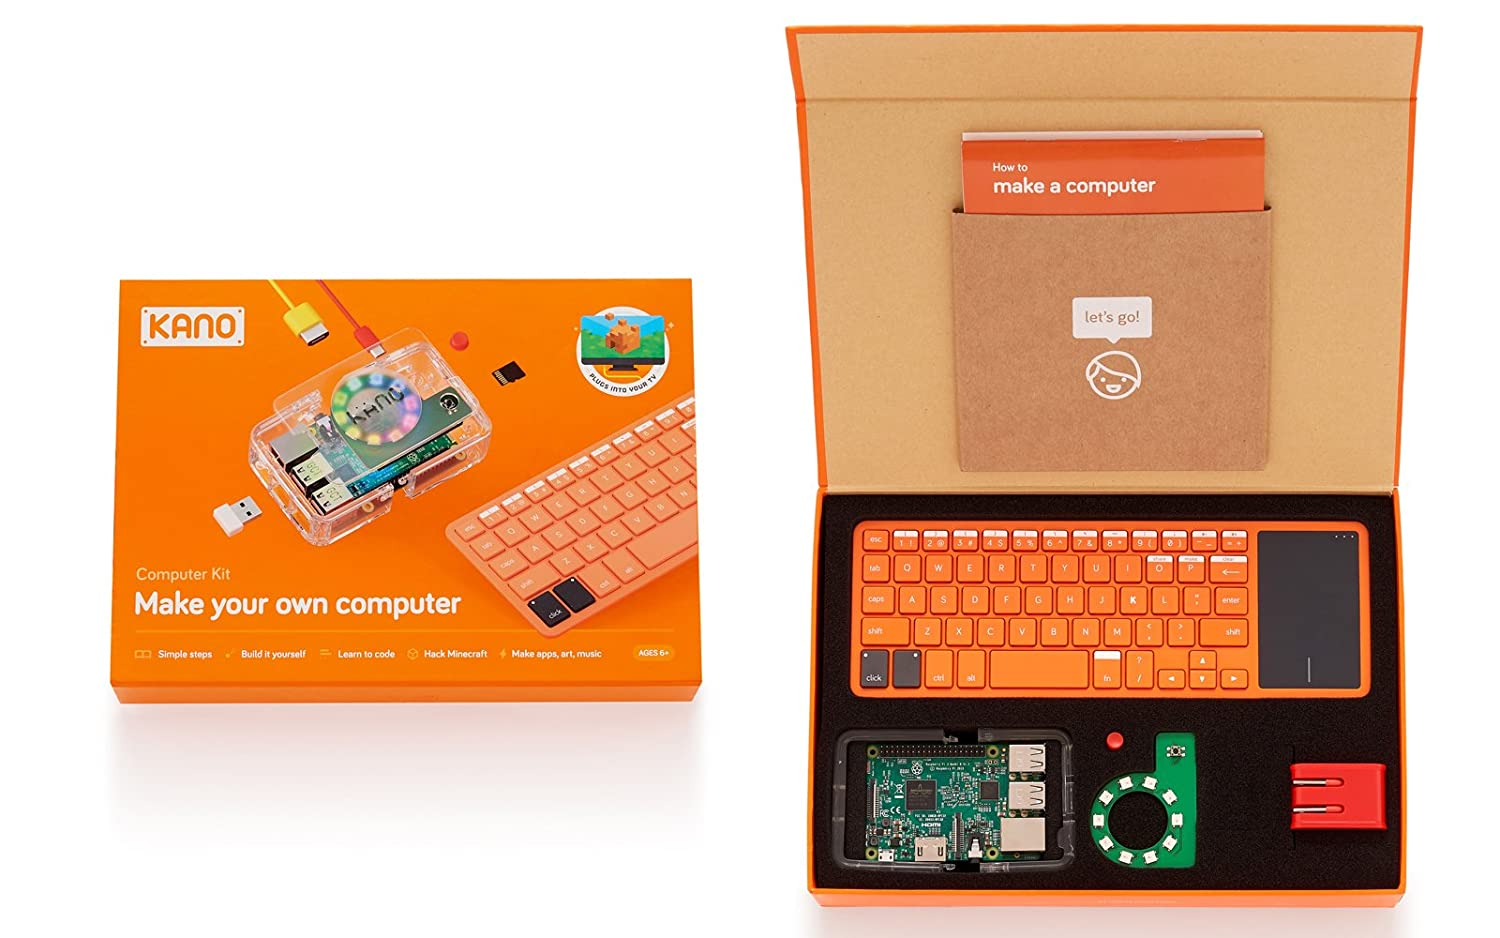 Amazon kano computer kit 2017 make a computer learn to amazon kano computer kit 2017 make a computer learn to code amazon launchpad solutioingenieria Image collections